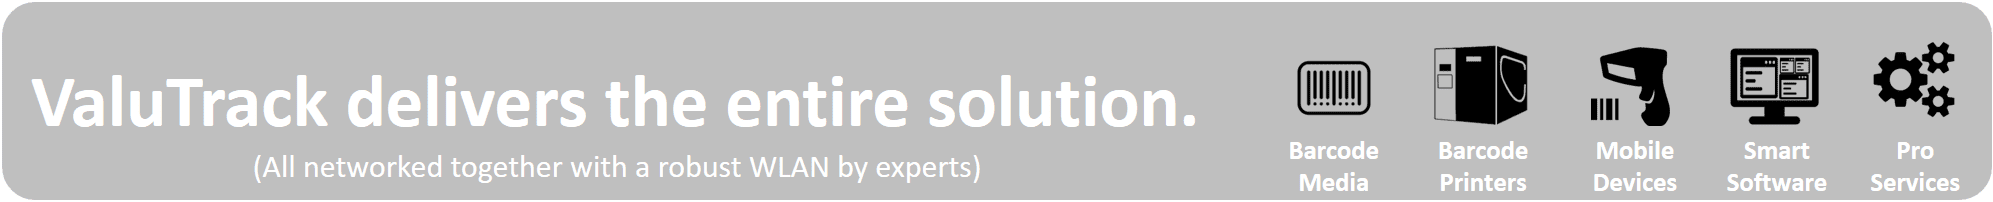 valutrack-total-solutions-banner-3